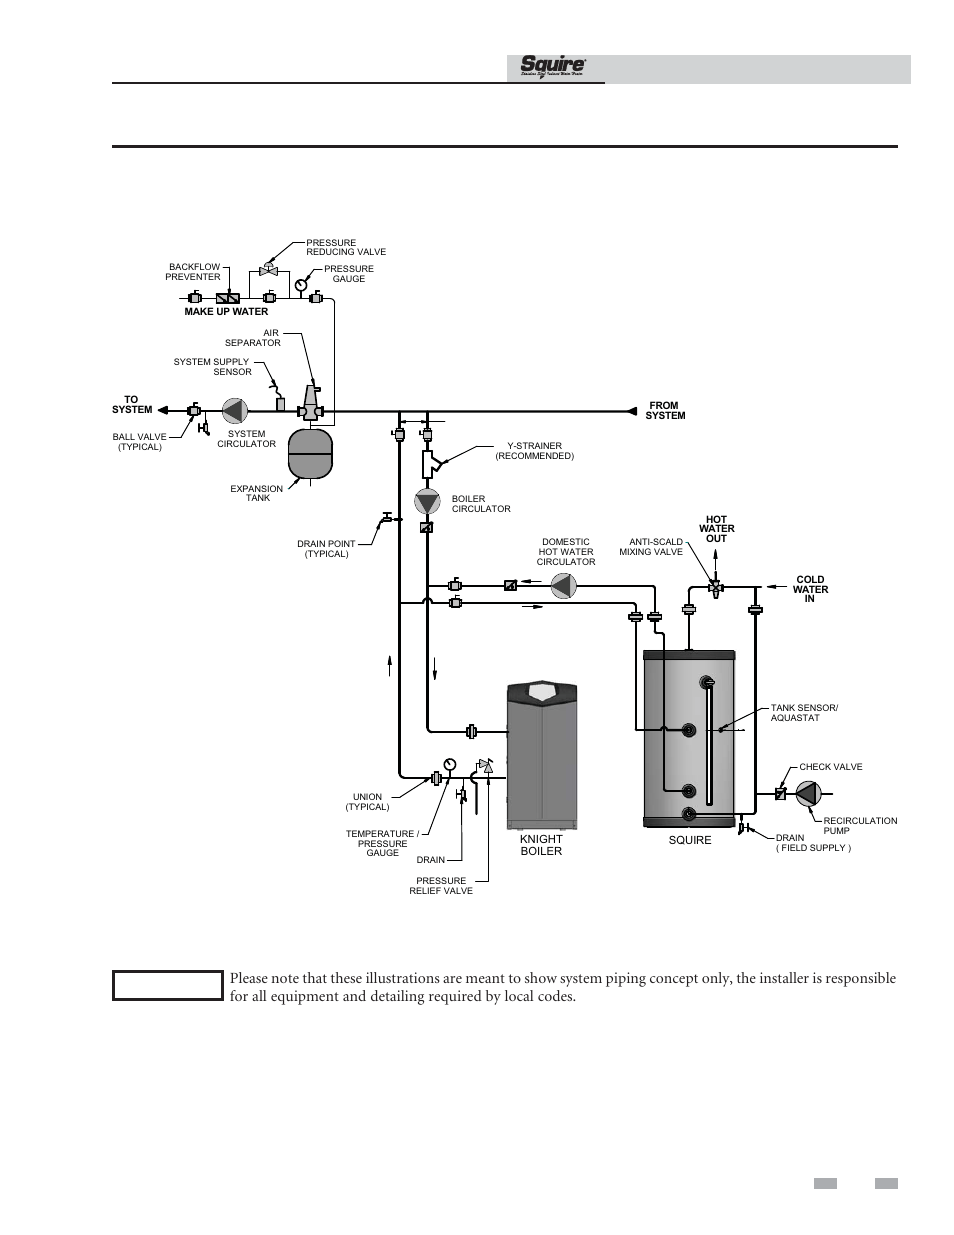 hight resolution of boiler side piping installation operation manual lochinvar squire sit119 user manual page 9 24